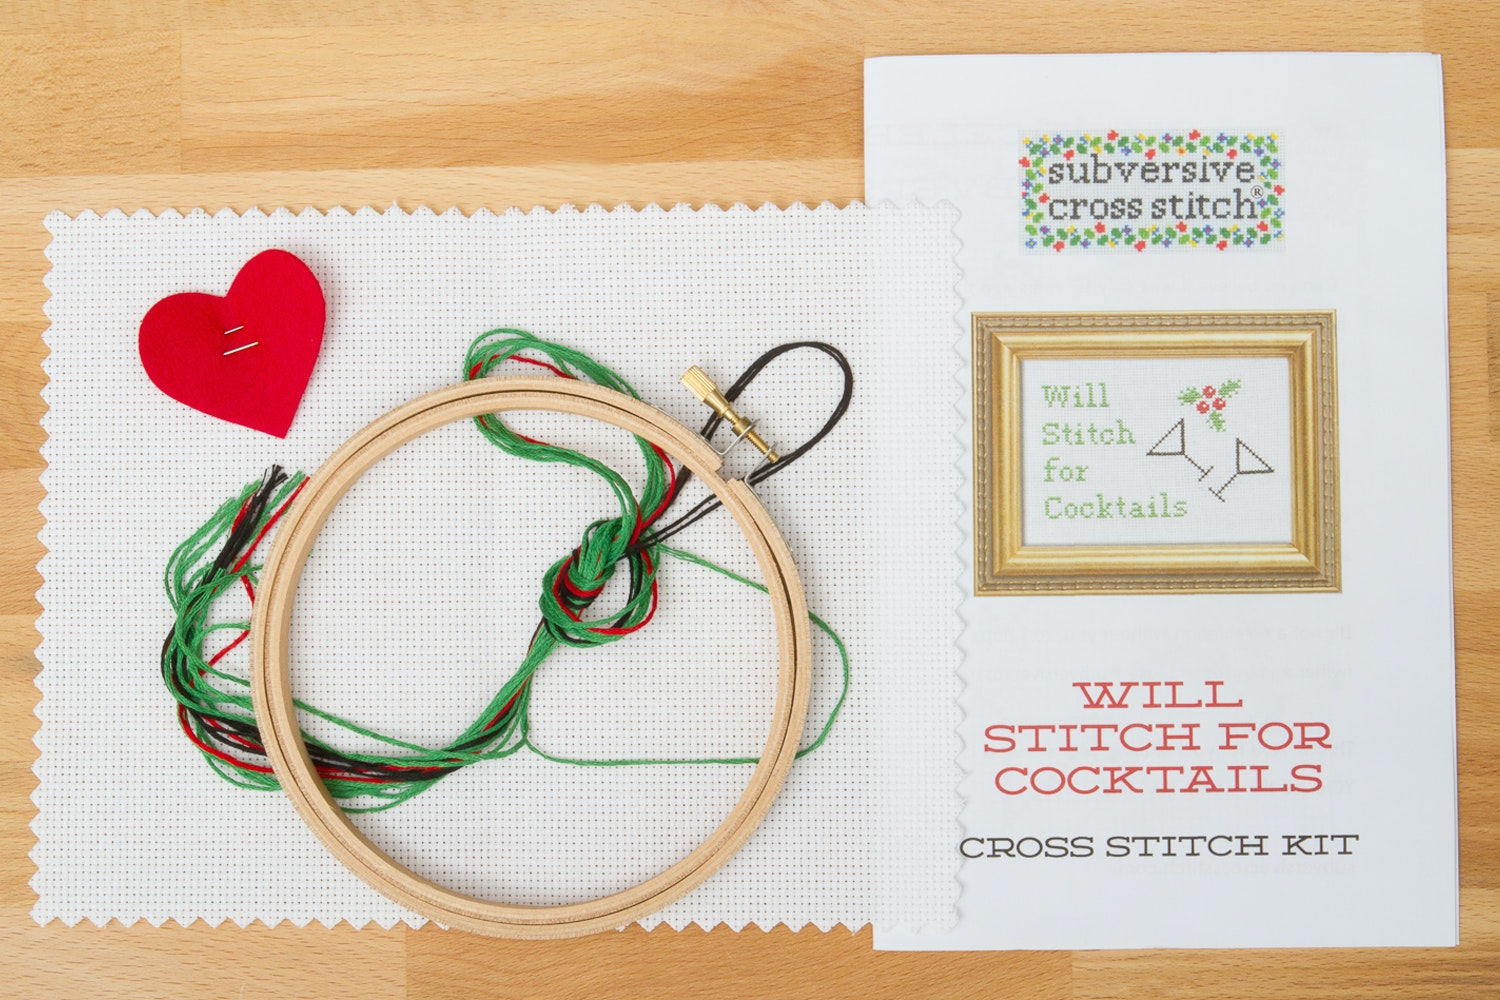 Will Stitch for Cocktails